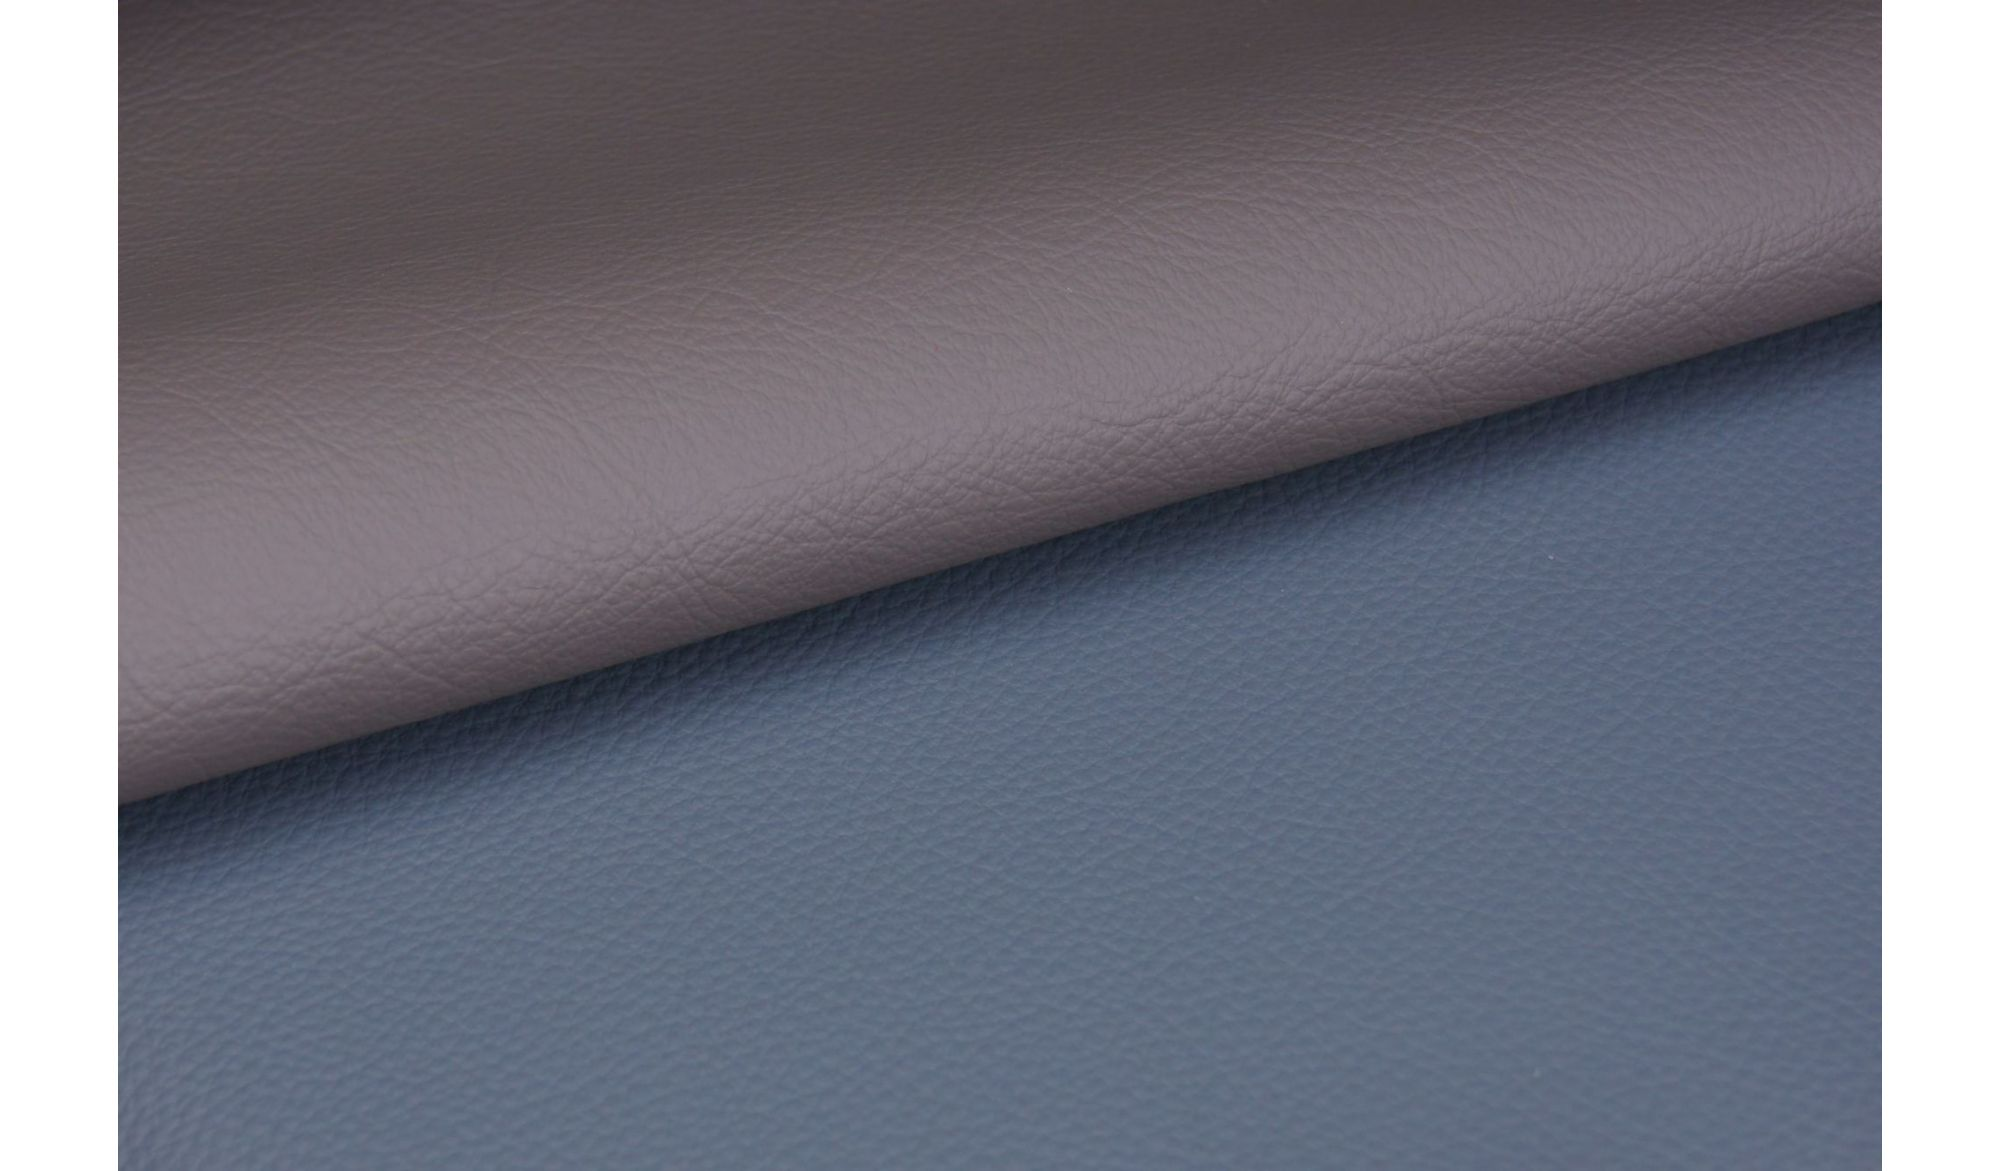 SKÓRA PALOMA Teal 058515 - Leather alt_skory_kolor_teal 058515 Upholstery IMO Plain - Default